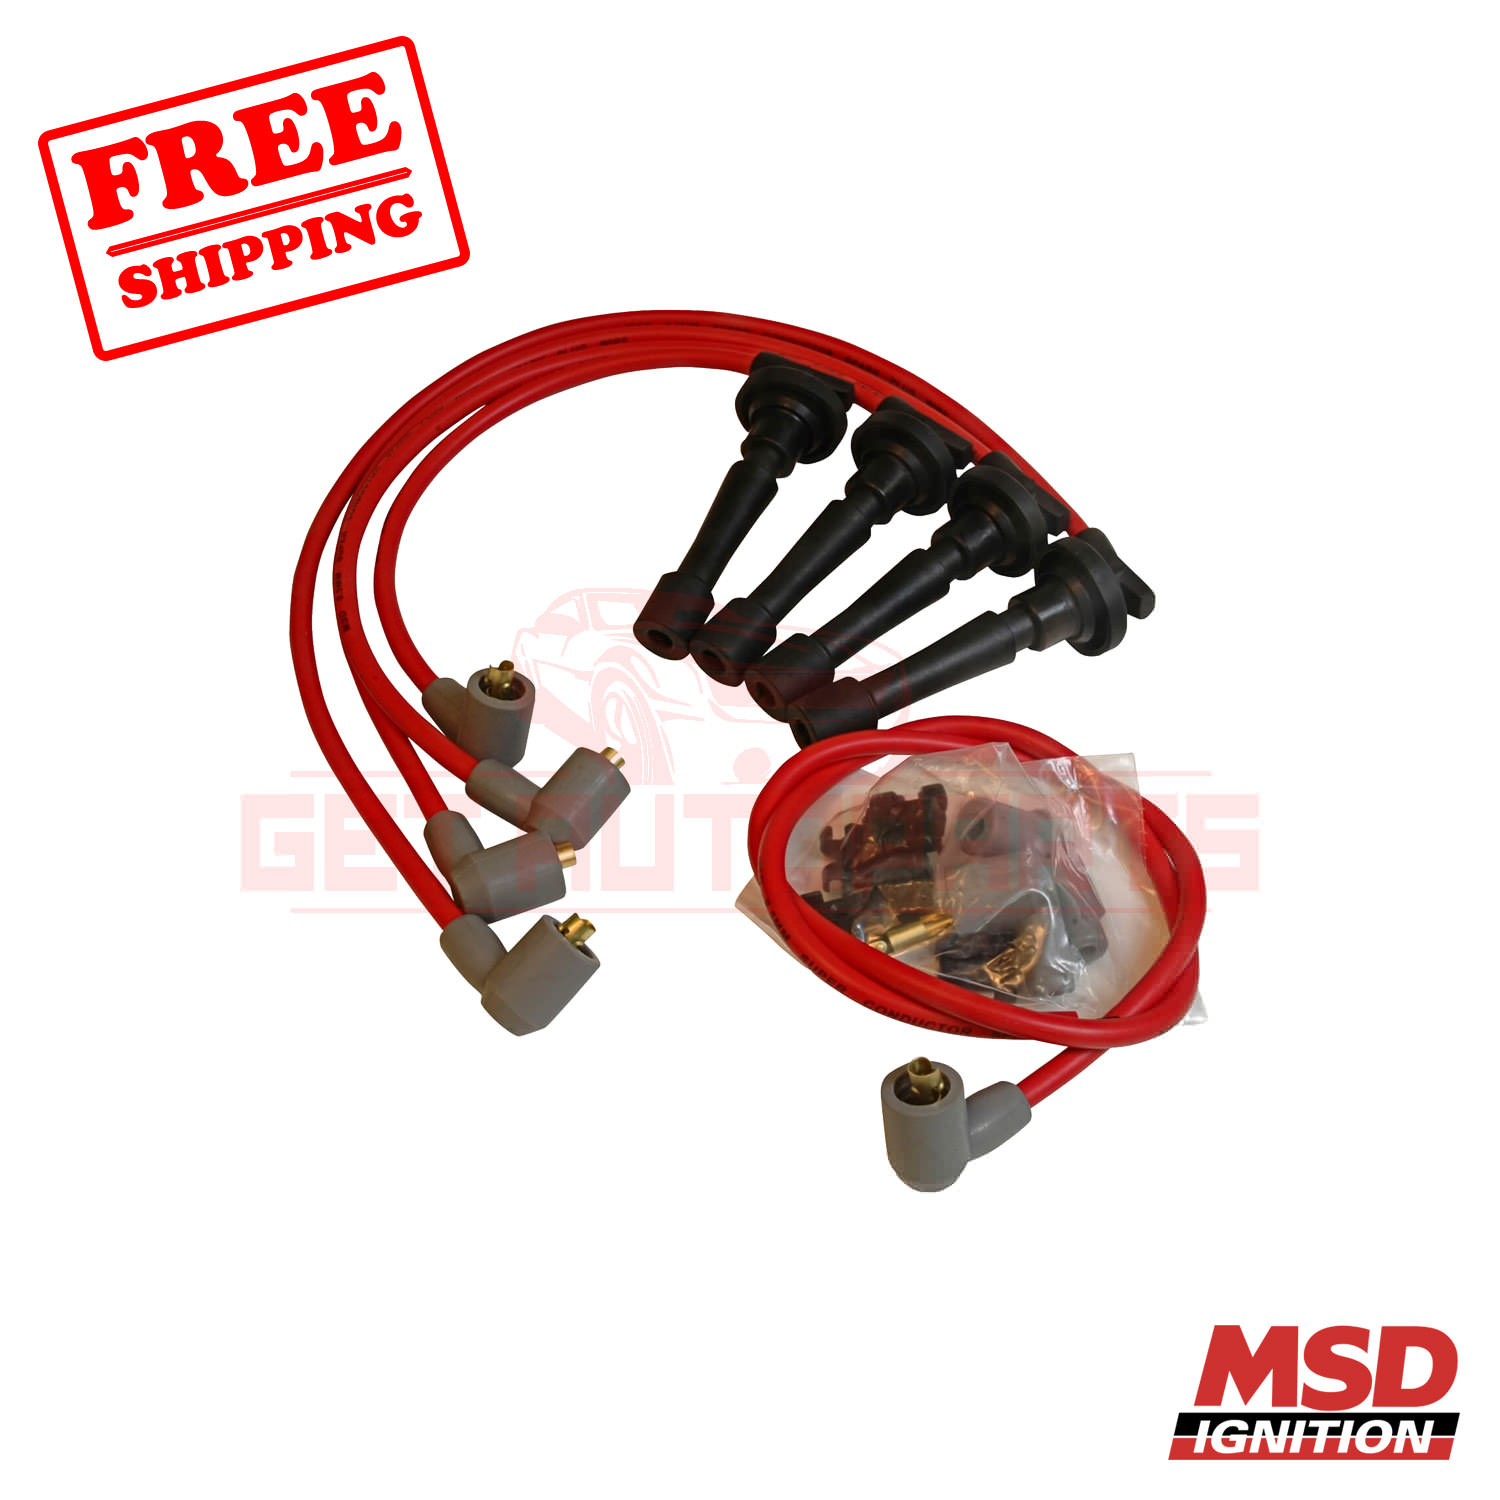 MSD Spark Plug Wire Set For Acura Integra 1990-1997